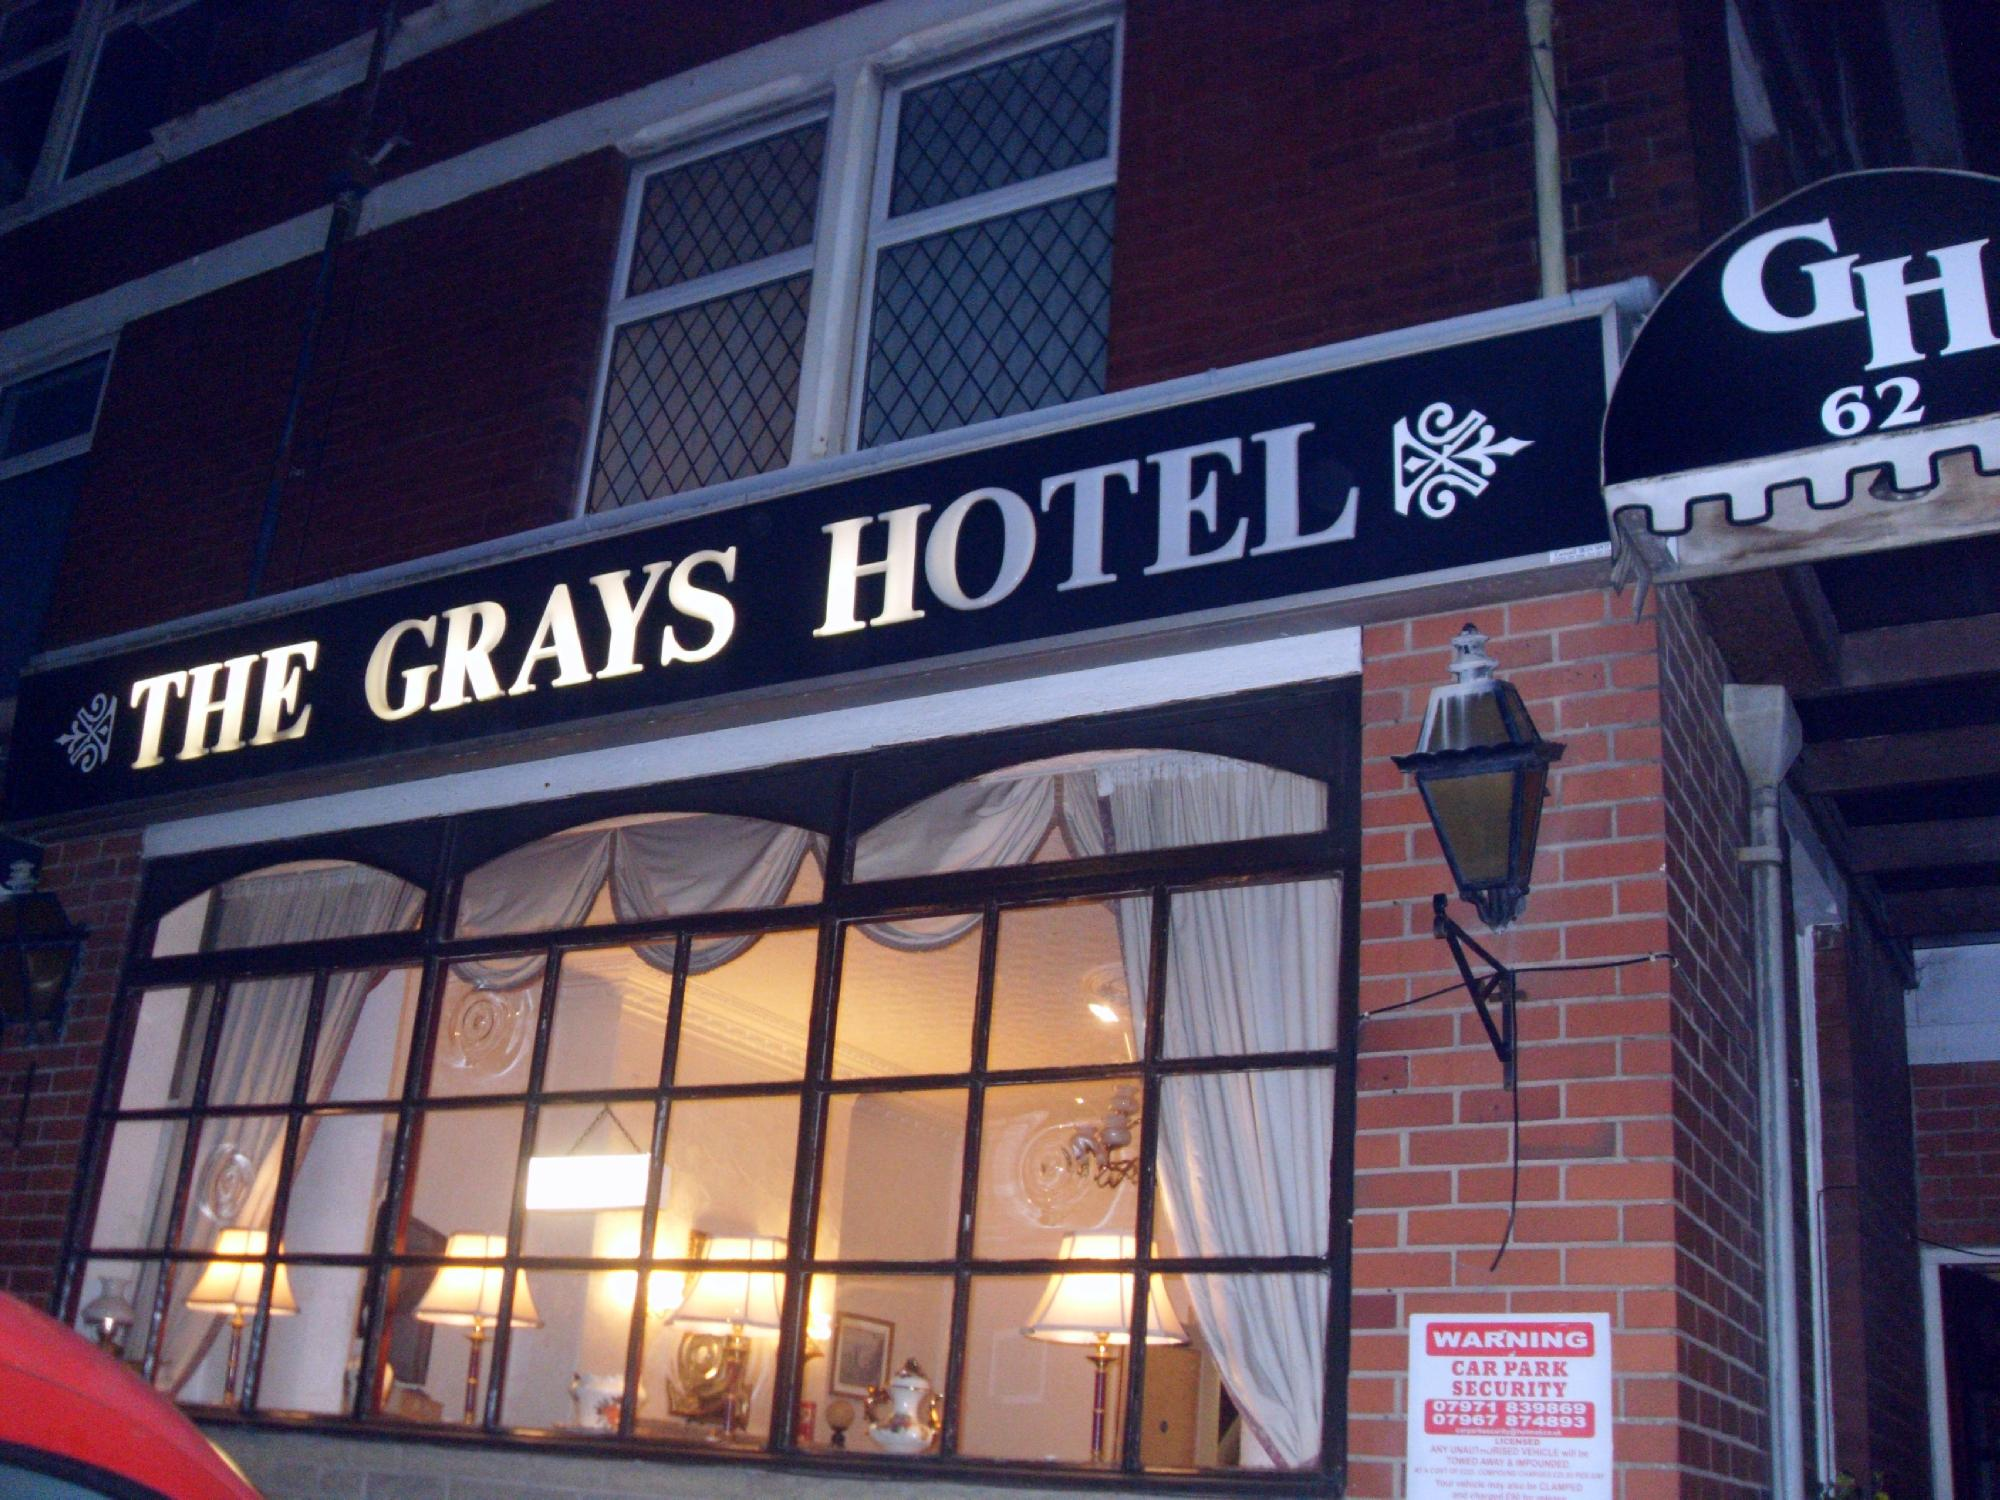 The Grays Hotel